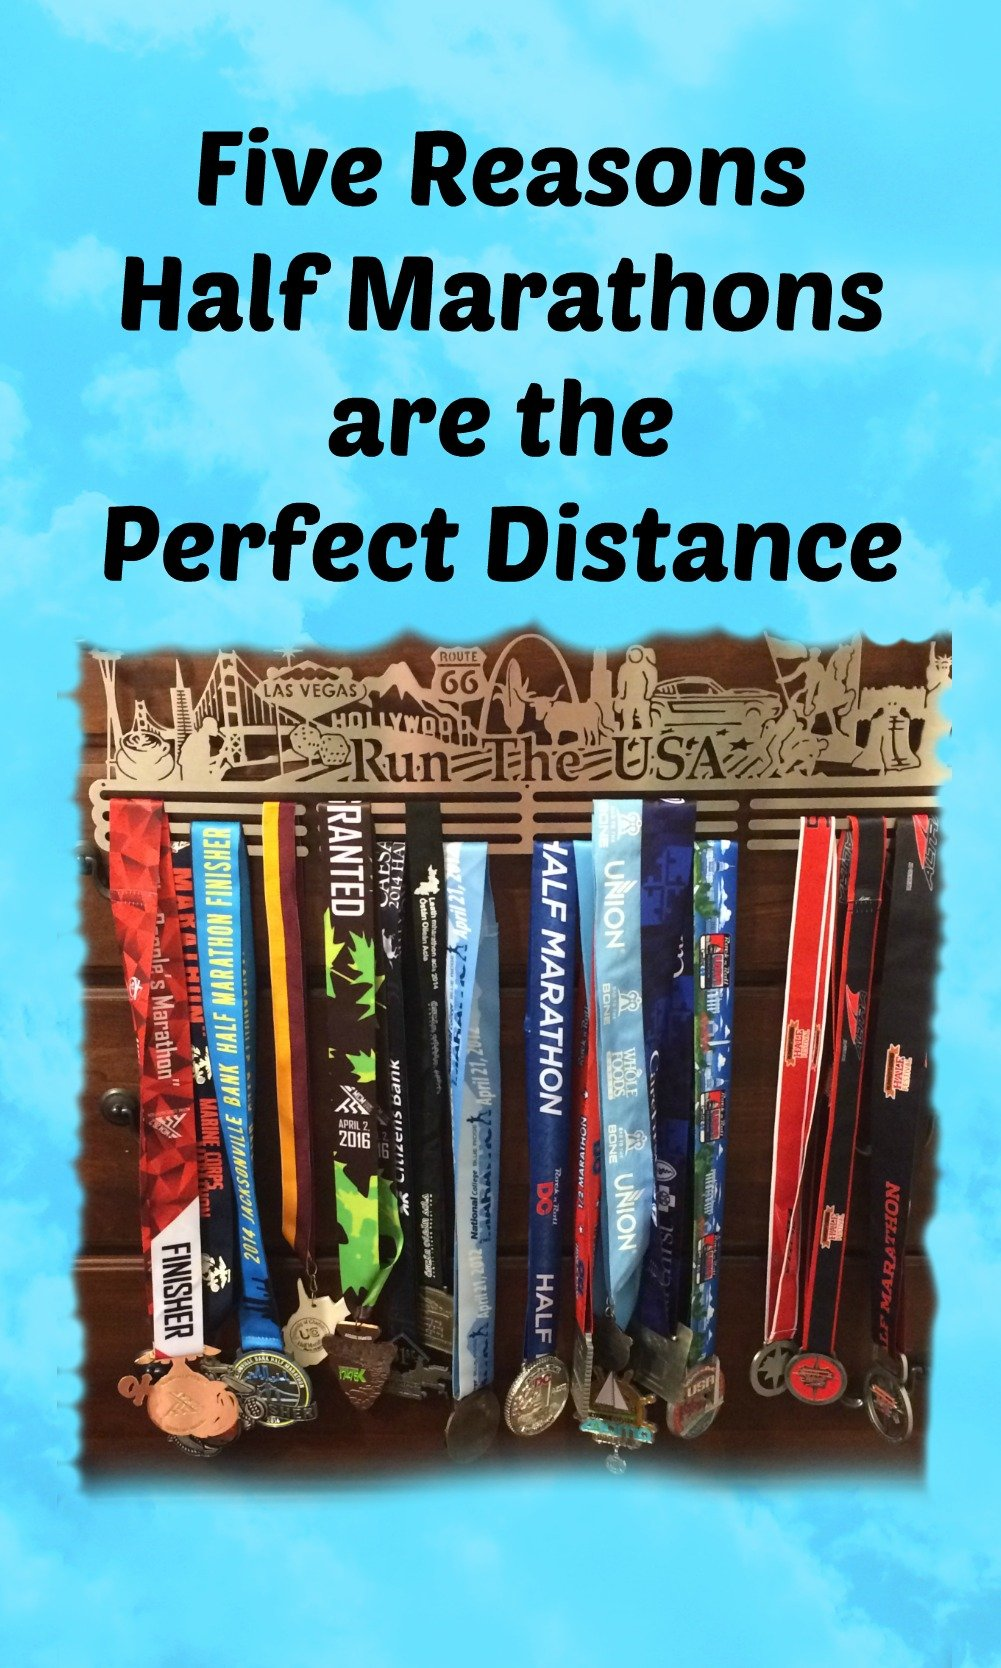 Half marathons are the perfect distance